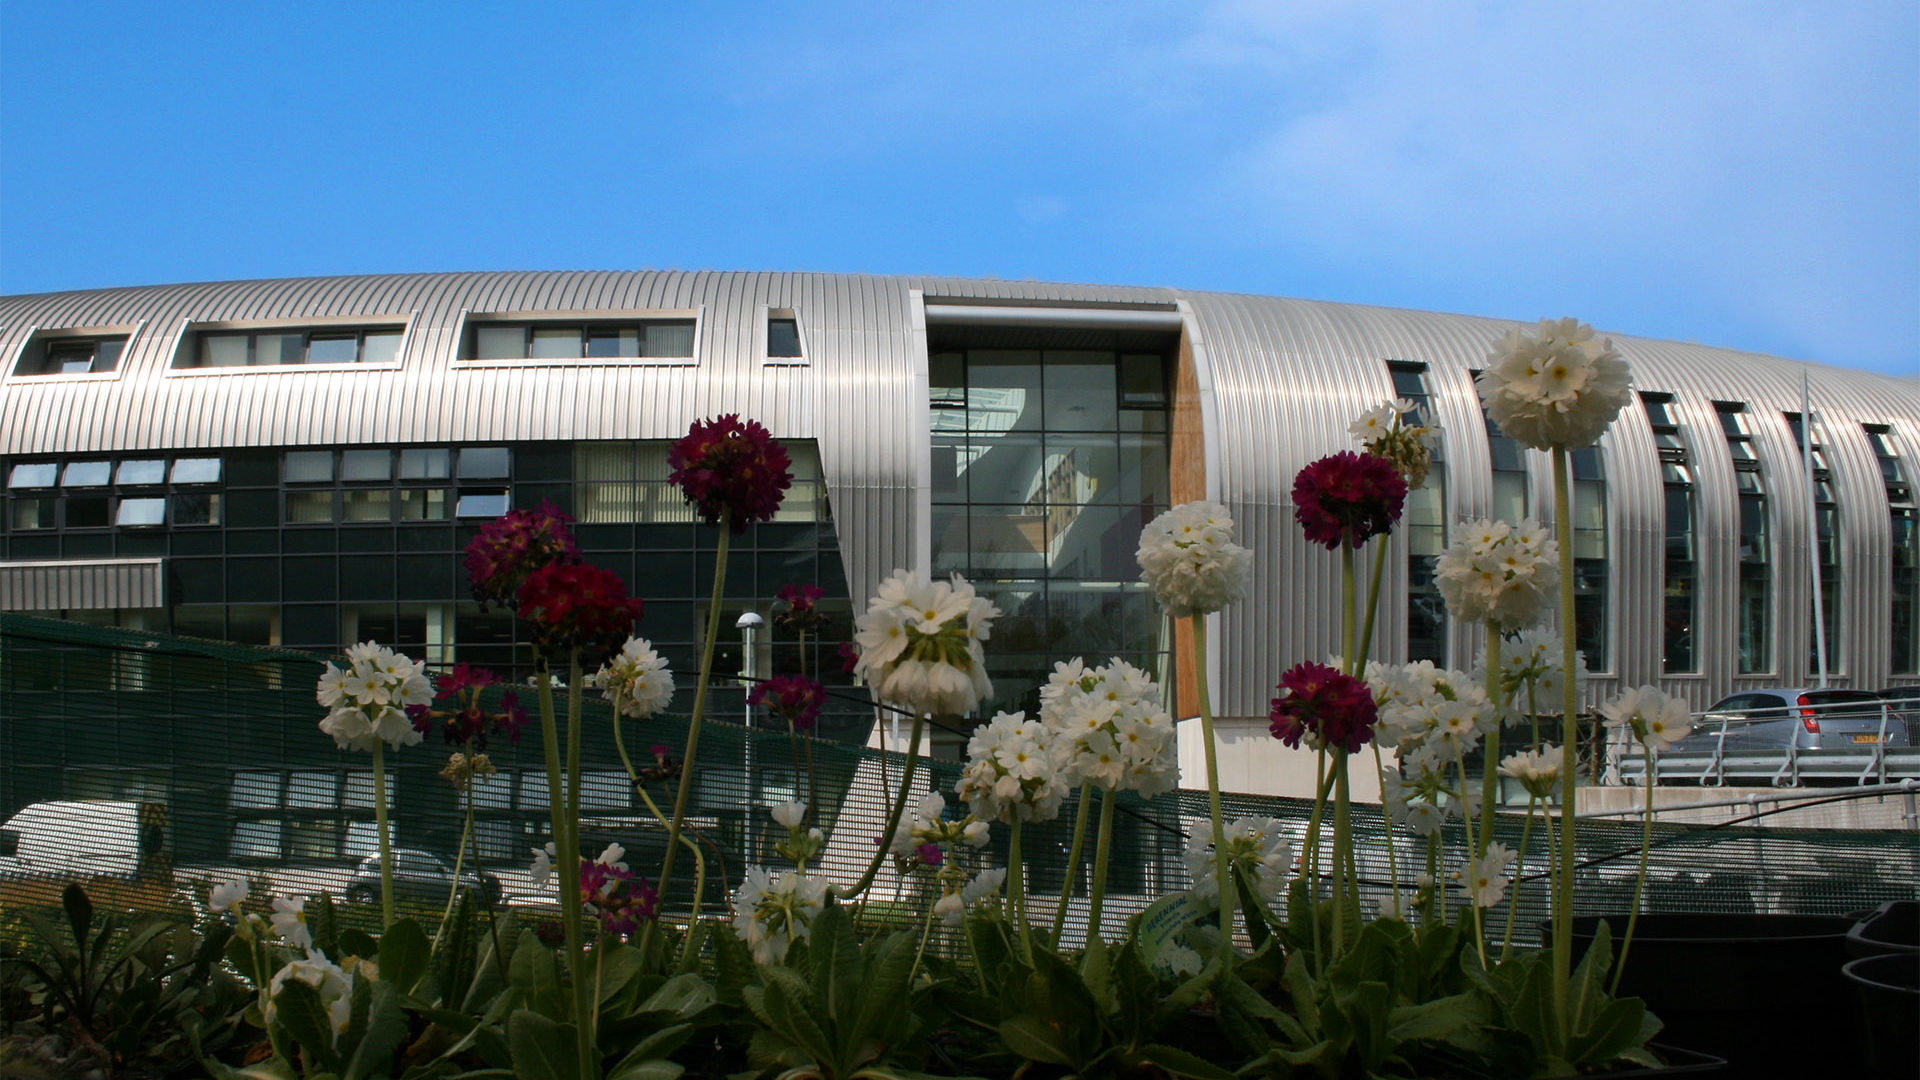 Exterior of SBSA campus with flowers